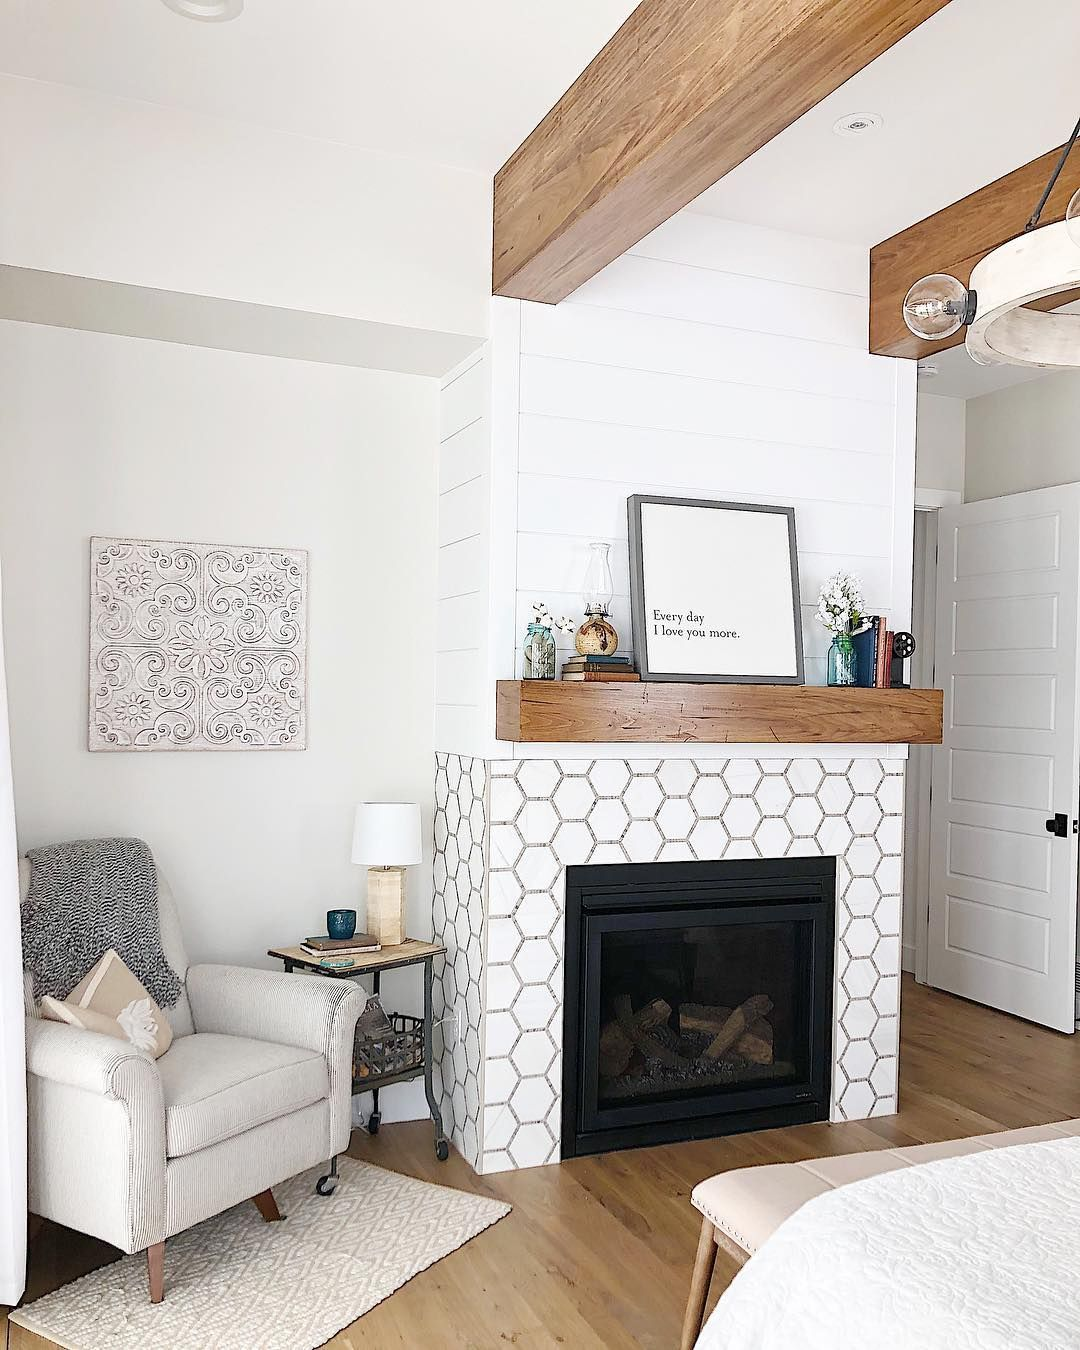 Tiffany Gowler Matt On Instagram Our Personal Master Bedroom Is The Smallest Master Bedroom We Have Ever Small Master Bedroom Simple Fireplace Cozy Room